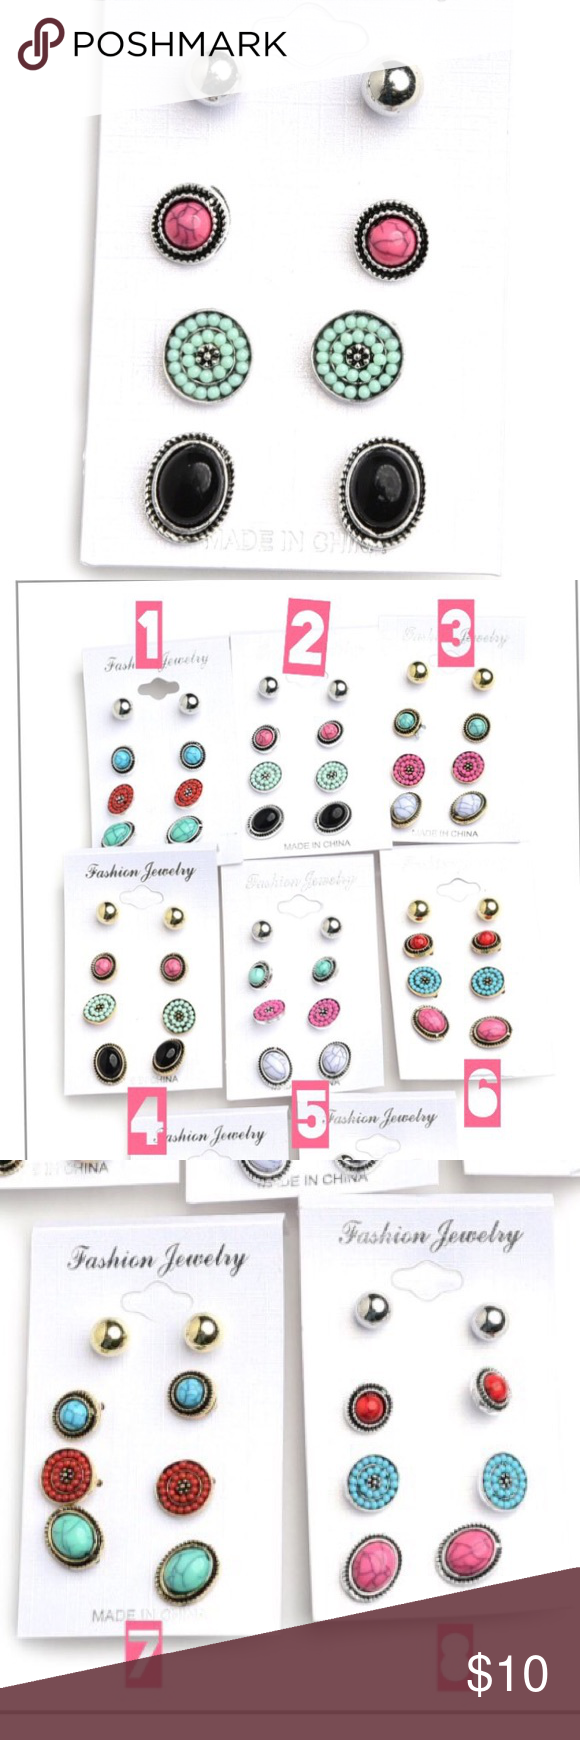 4 pair gemstone earrings. 4 pair gem stone earrings in gold and silver   + BRAND NEW ITEM! + all jewelry 1 for $10, 2 for $15, 3 for $20 + please no trade offers + listing is for main item pictured, all other         items in the photo are for display only + will ship within 2-5 days     unless otherwise requested + bundle to save on shipping  + follow @ladymuerta on     Pinterest & Instagram Charming Charlie Jewelry Earrings